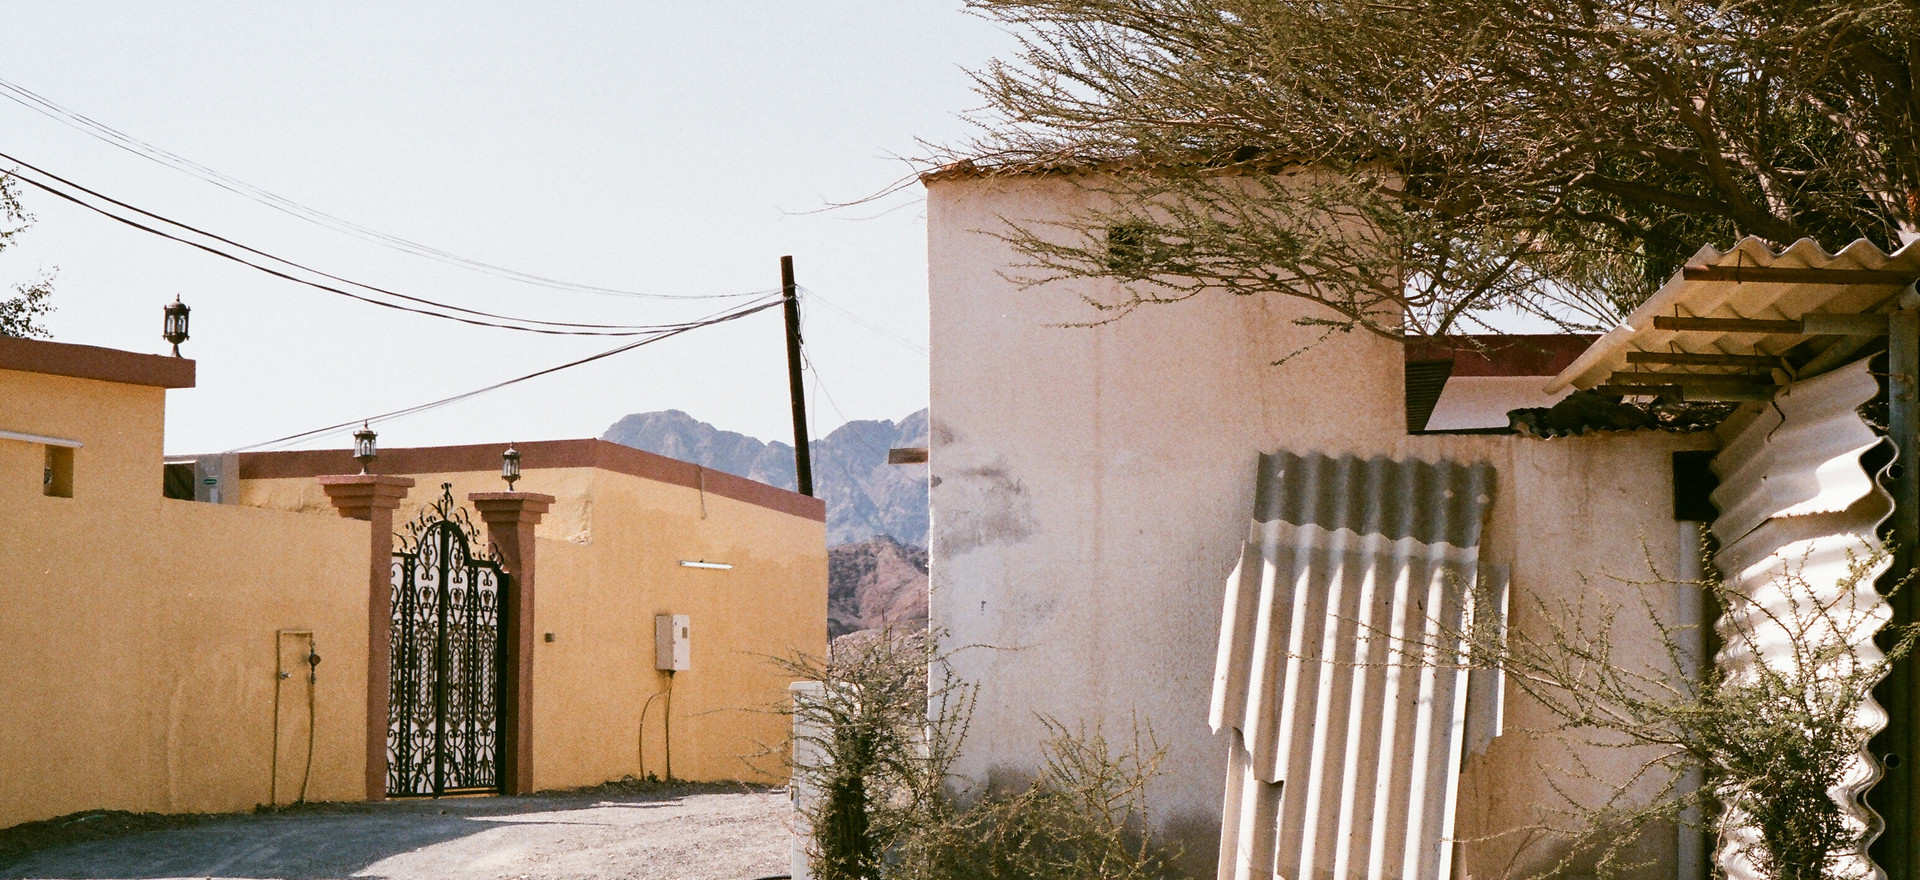 Project: Rural UAE On Film